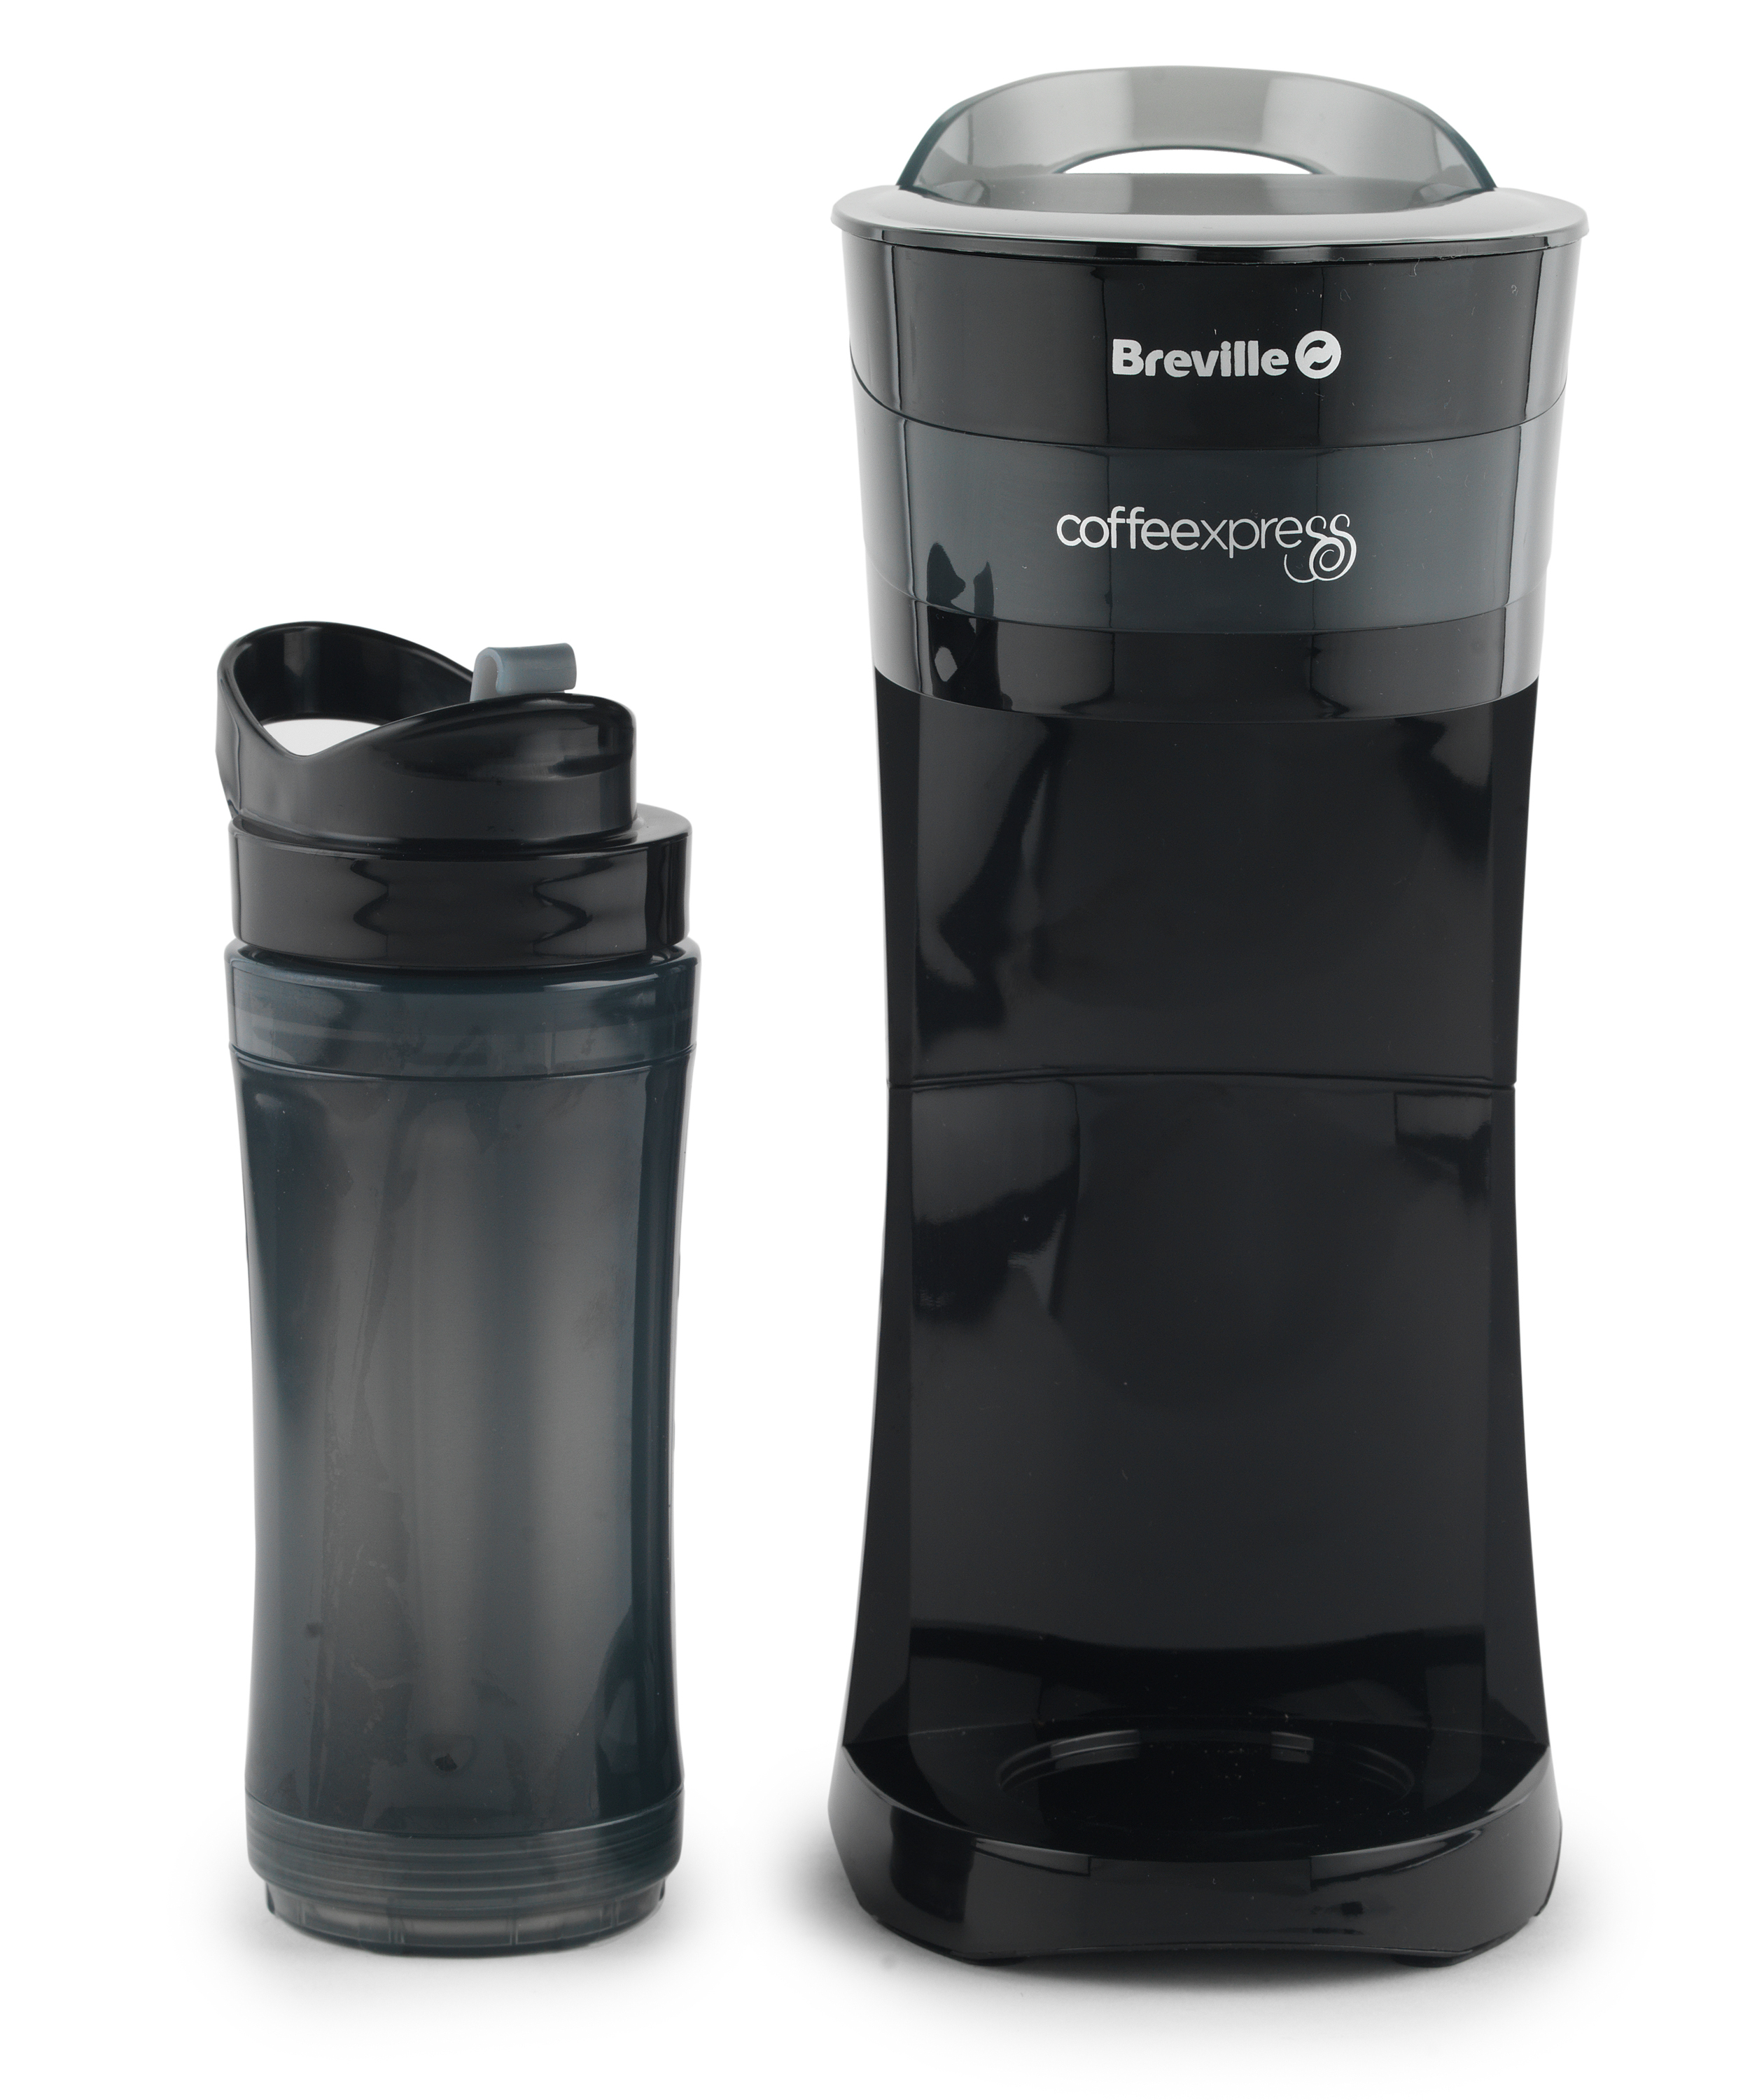 Breville Coffee Maker Gold Filter : Breville VCF050 Coffee Express 500ml Personal Coffee Machine 5011773054713 eBay